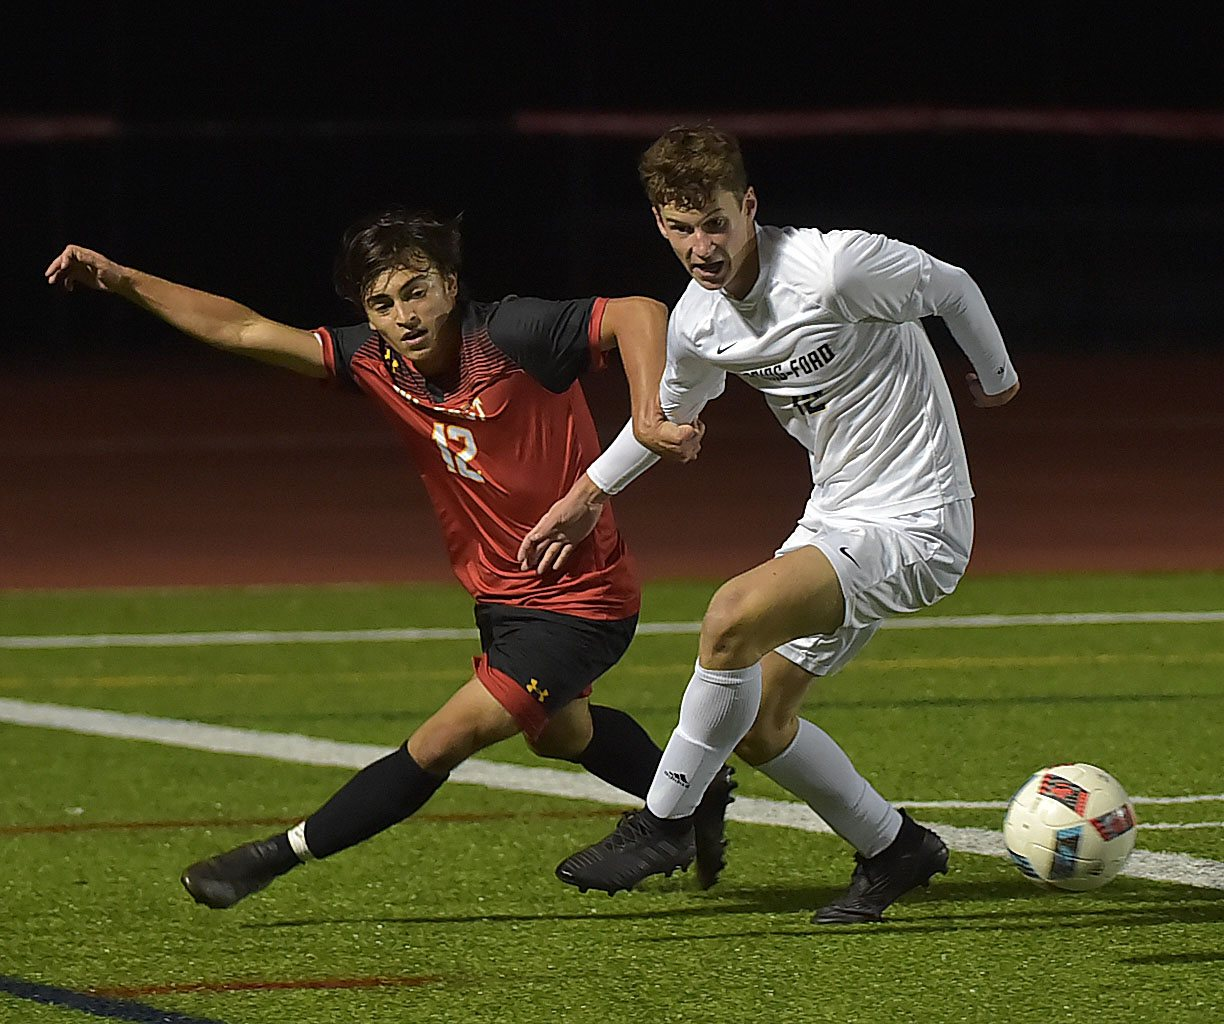 West Chester East forward (12) Vega Cruz is kept off the ball by Spring-Ford's (12) Brian Zisk late in the game. Spring-Ford went on to win 1-0 in District playoff action at West Chester East Thursday night.